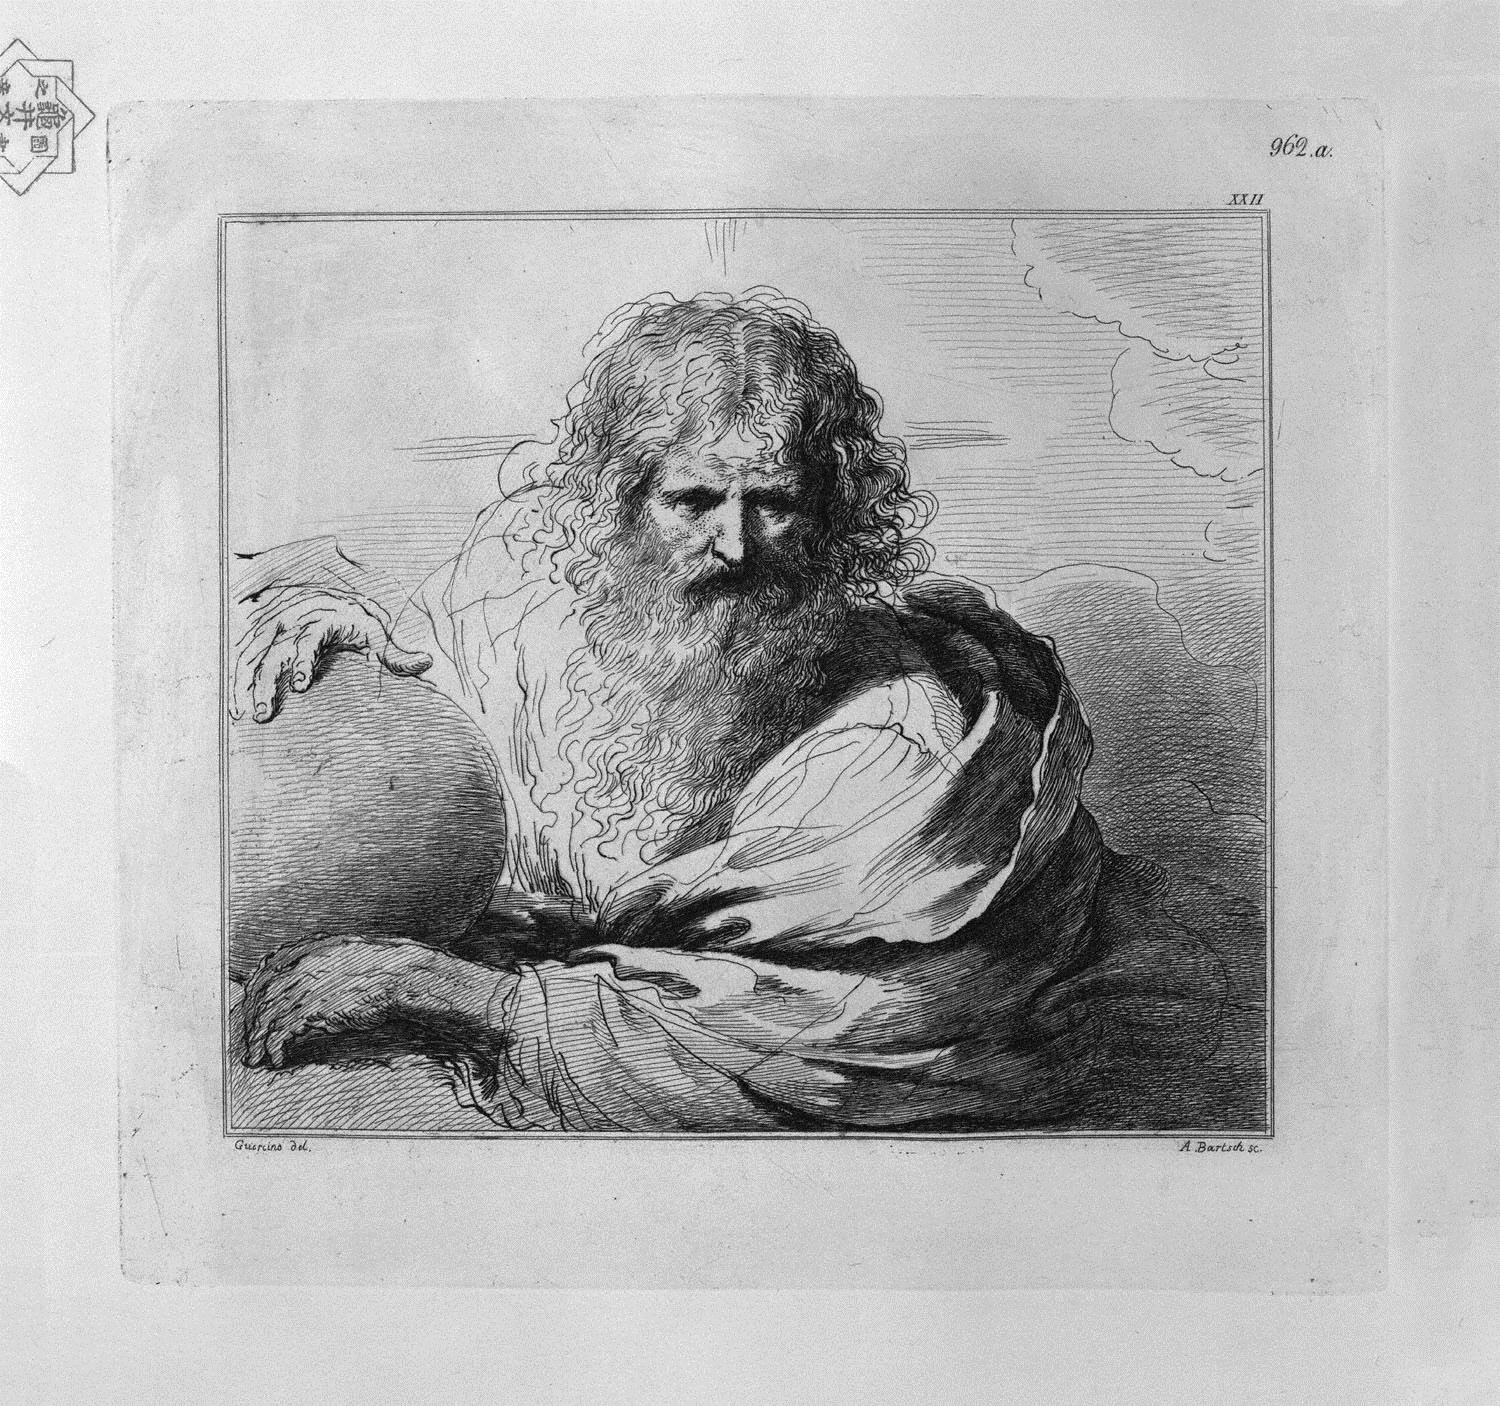 http://uploads7.wikipaintings.org/images/giovanni-battista-piranesi/half-figure-of-a-warrior-with-a-chalice-in-his-hands-by-guercino.jpg